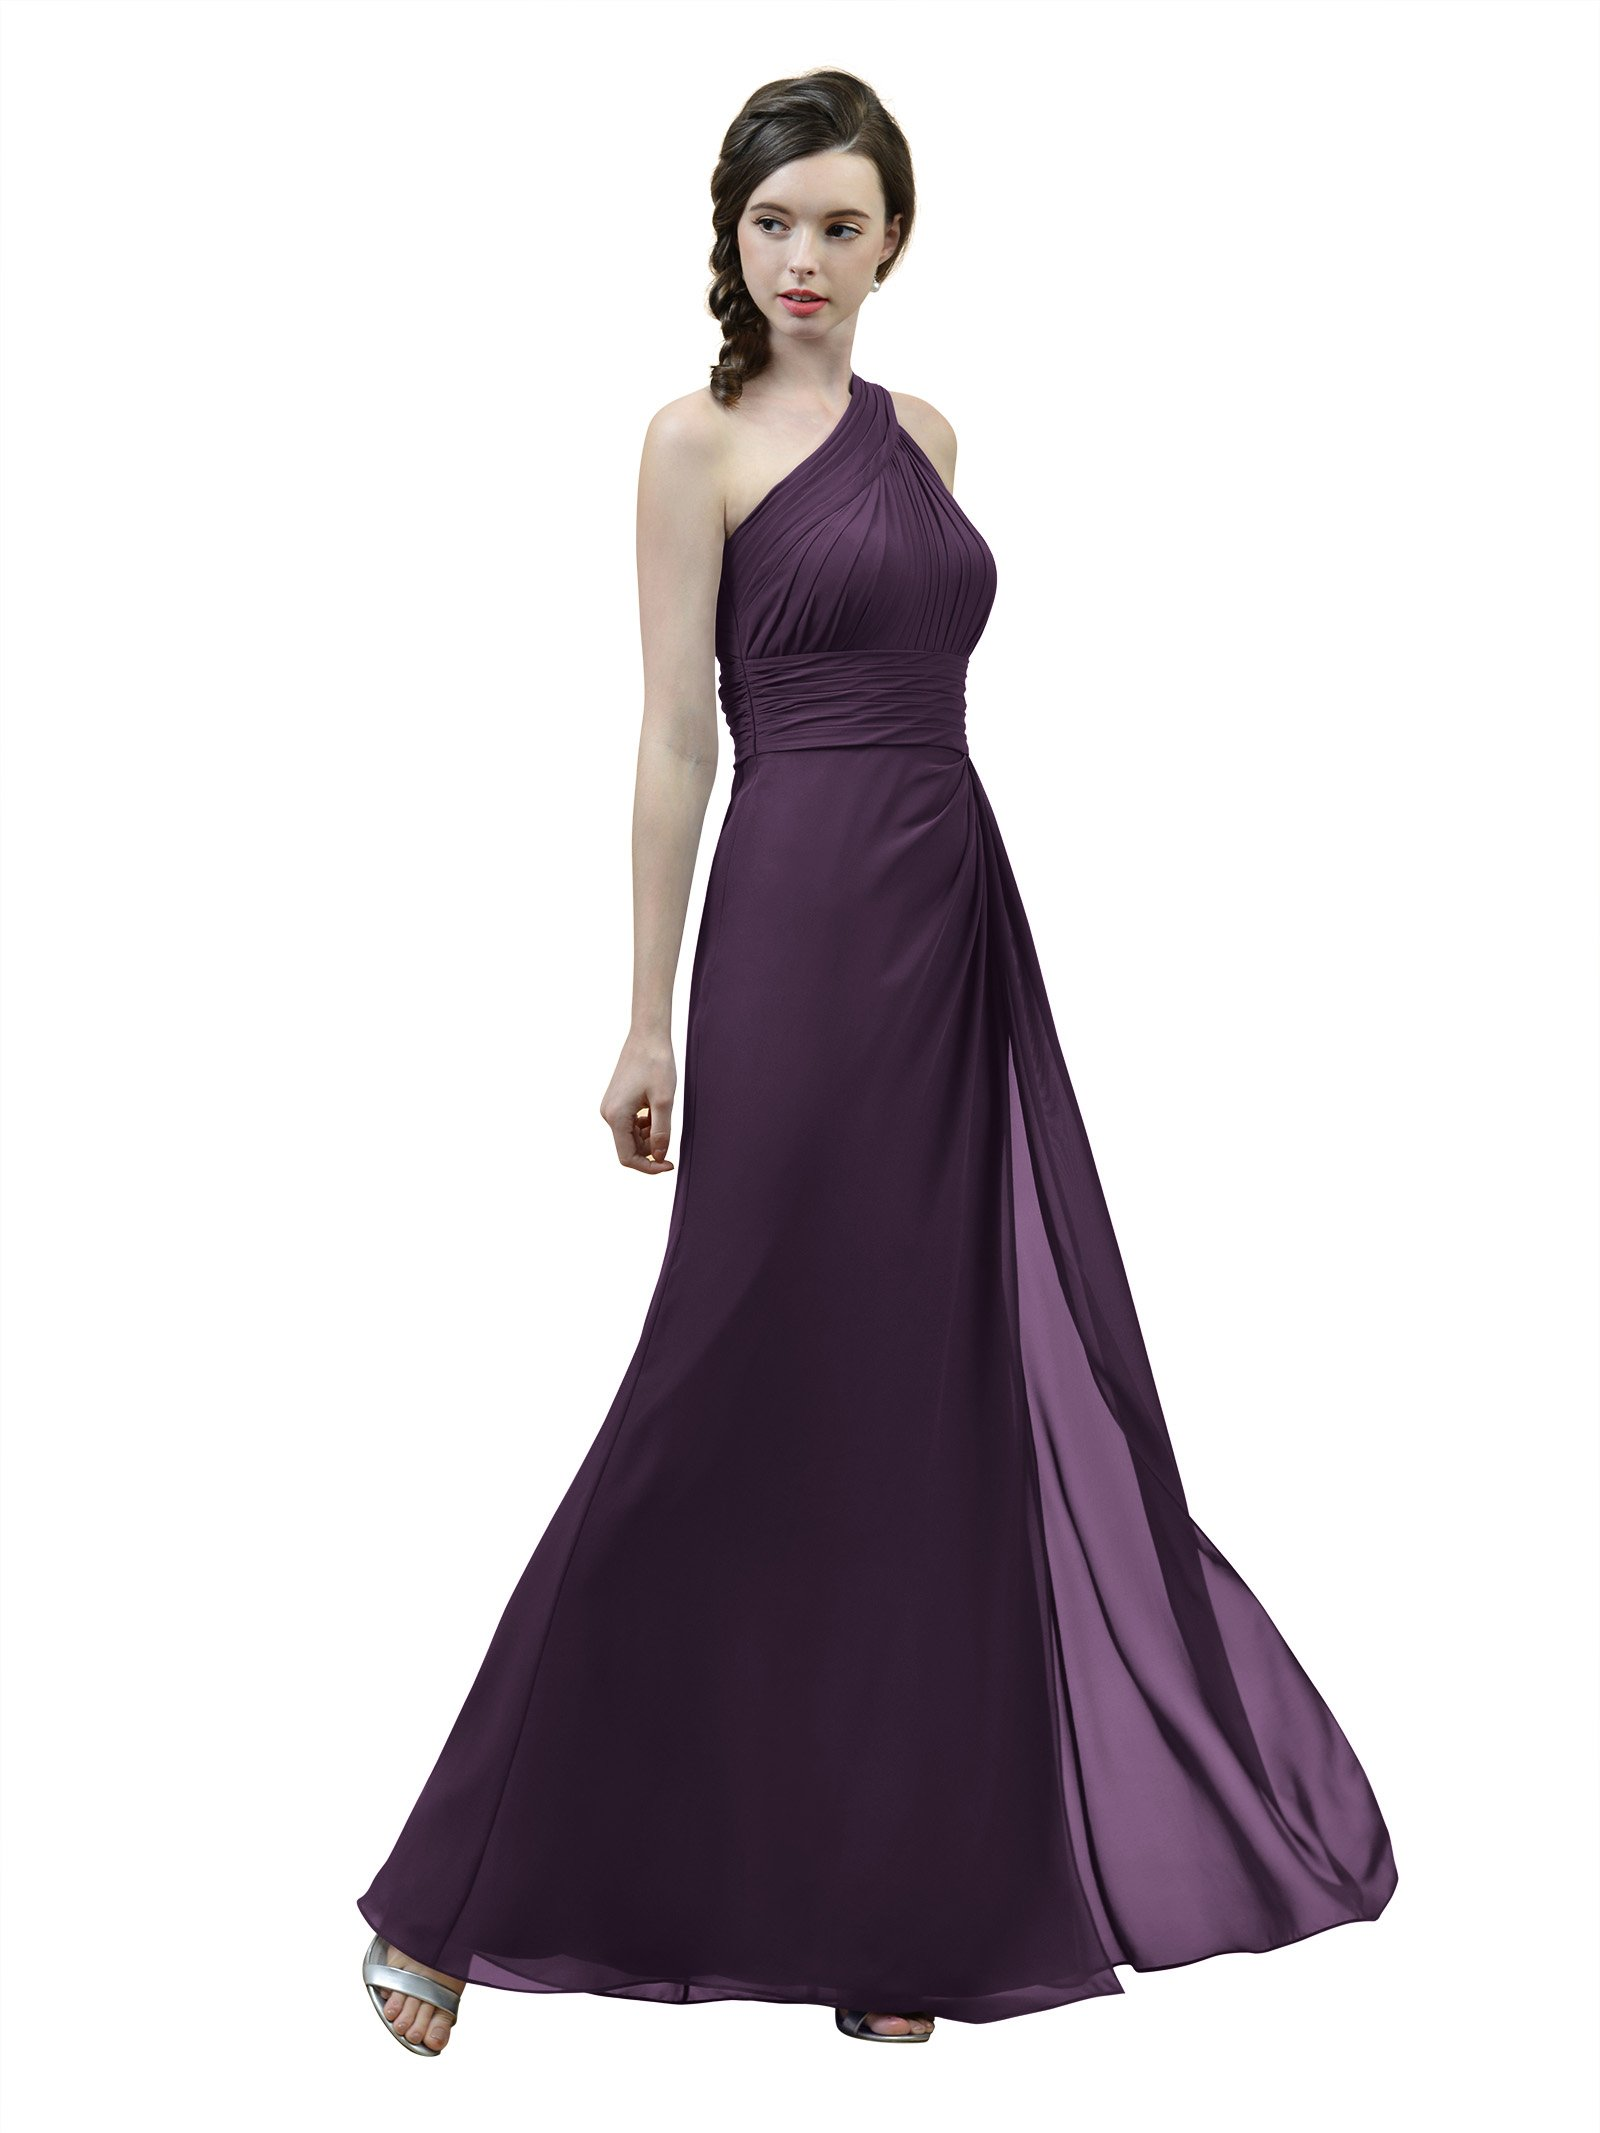 9c5a099a38f Alicepub Long Pleated Chiffon Bridesmaid Dress One Shoulder Formal Party  Evening Prom Gown for Women